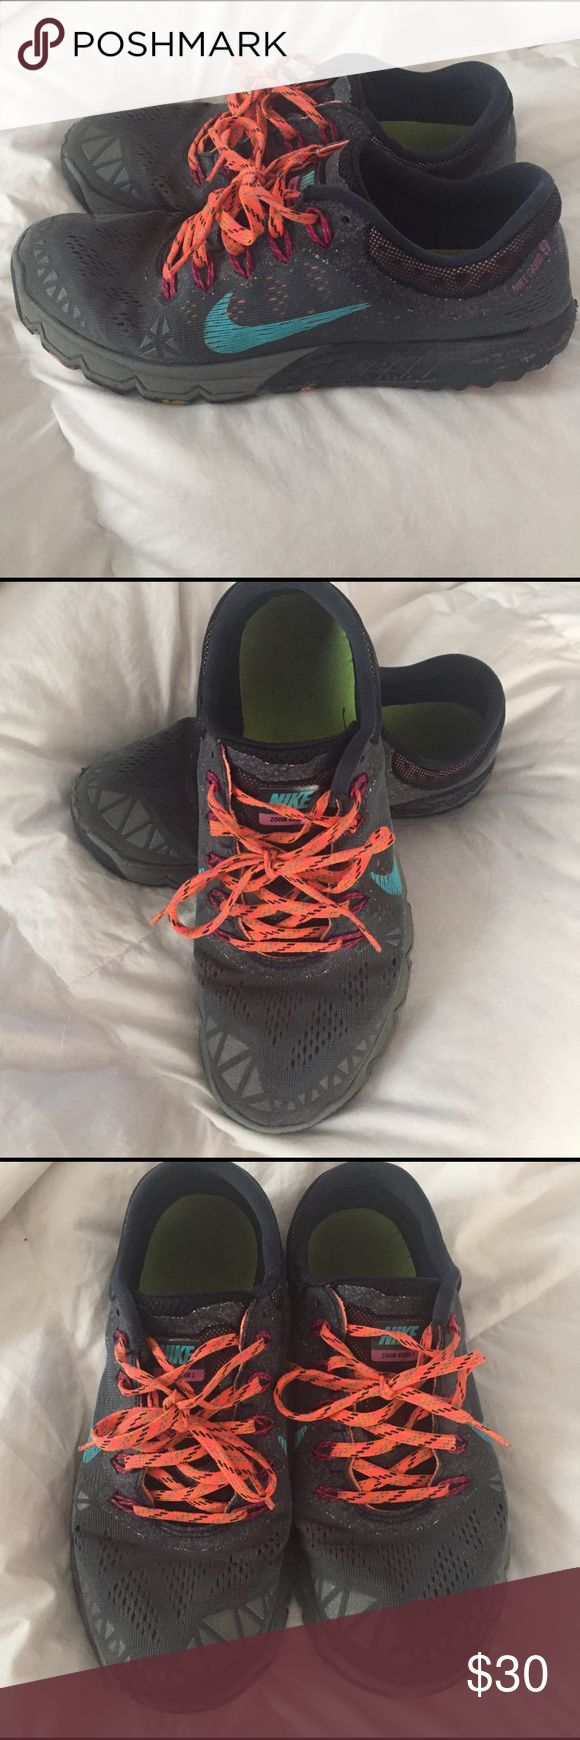 Nike workout shoes Nike workout shoes great for hiking and running. They are a grayish deep blue with a teal swoosh and orange shoe strings. They are in great condition though the tread on the bottom is a little worn down. Nike Shoes Athletic Shoes